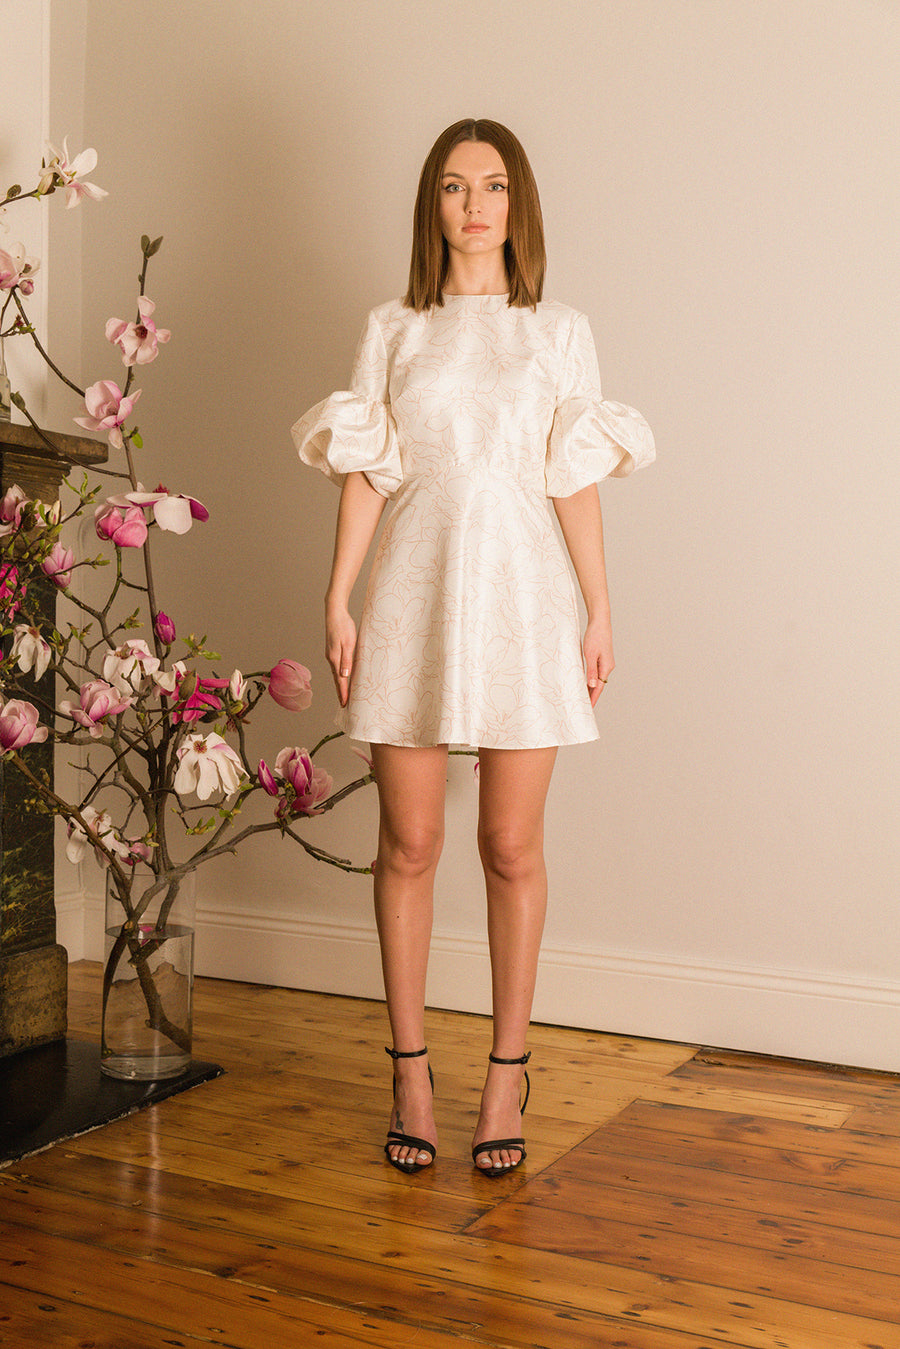 Sakura Mini Dress in Cherry Blossom Ivory